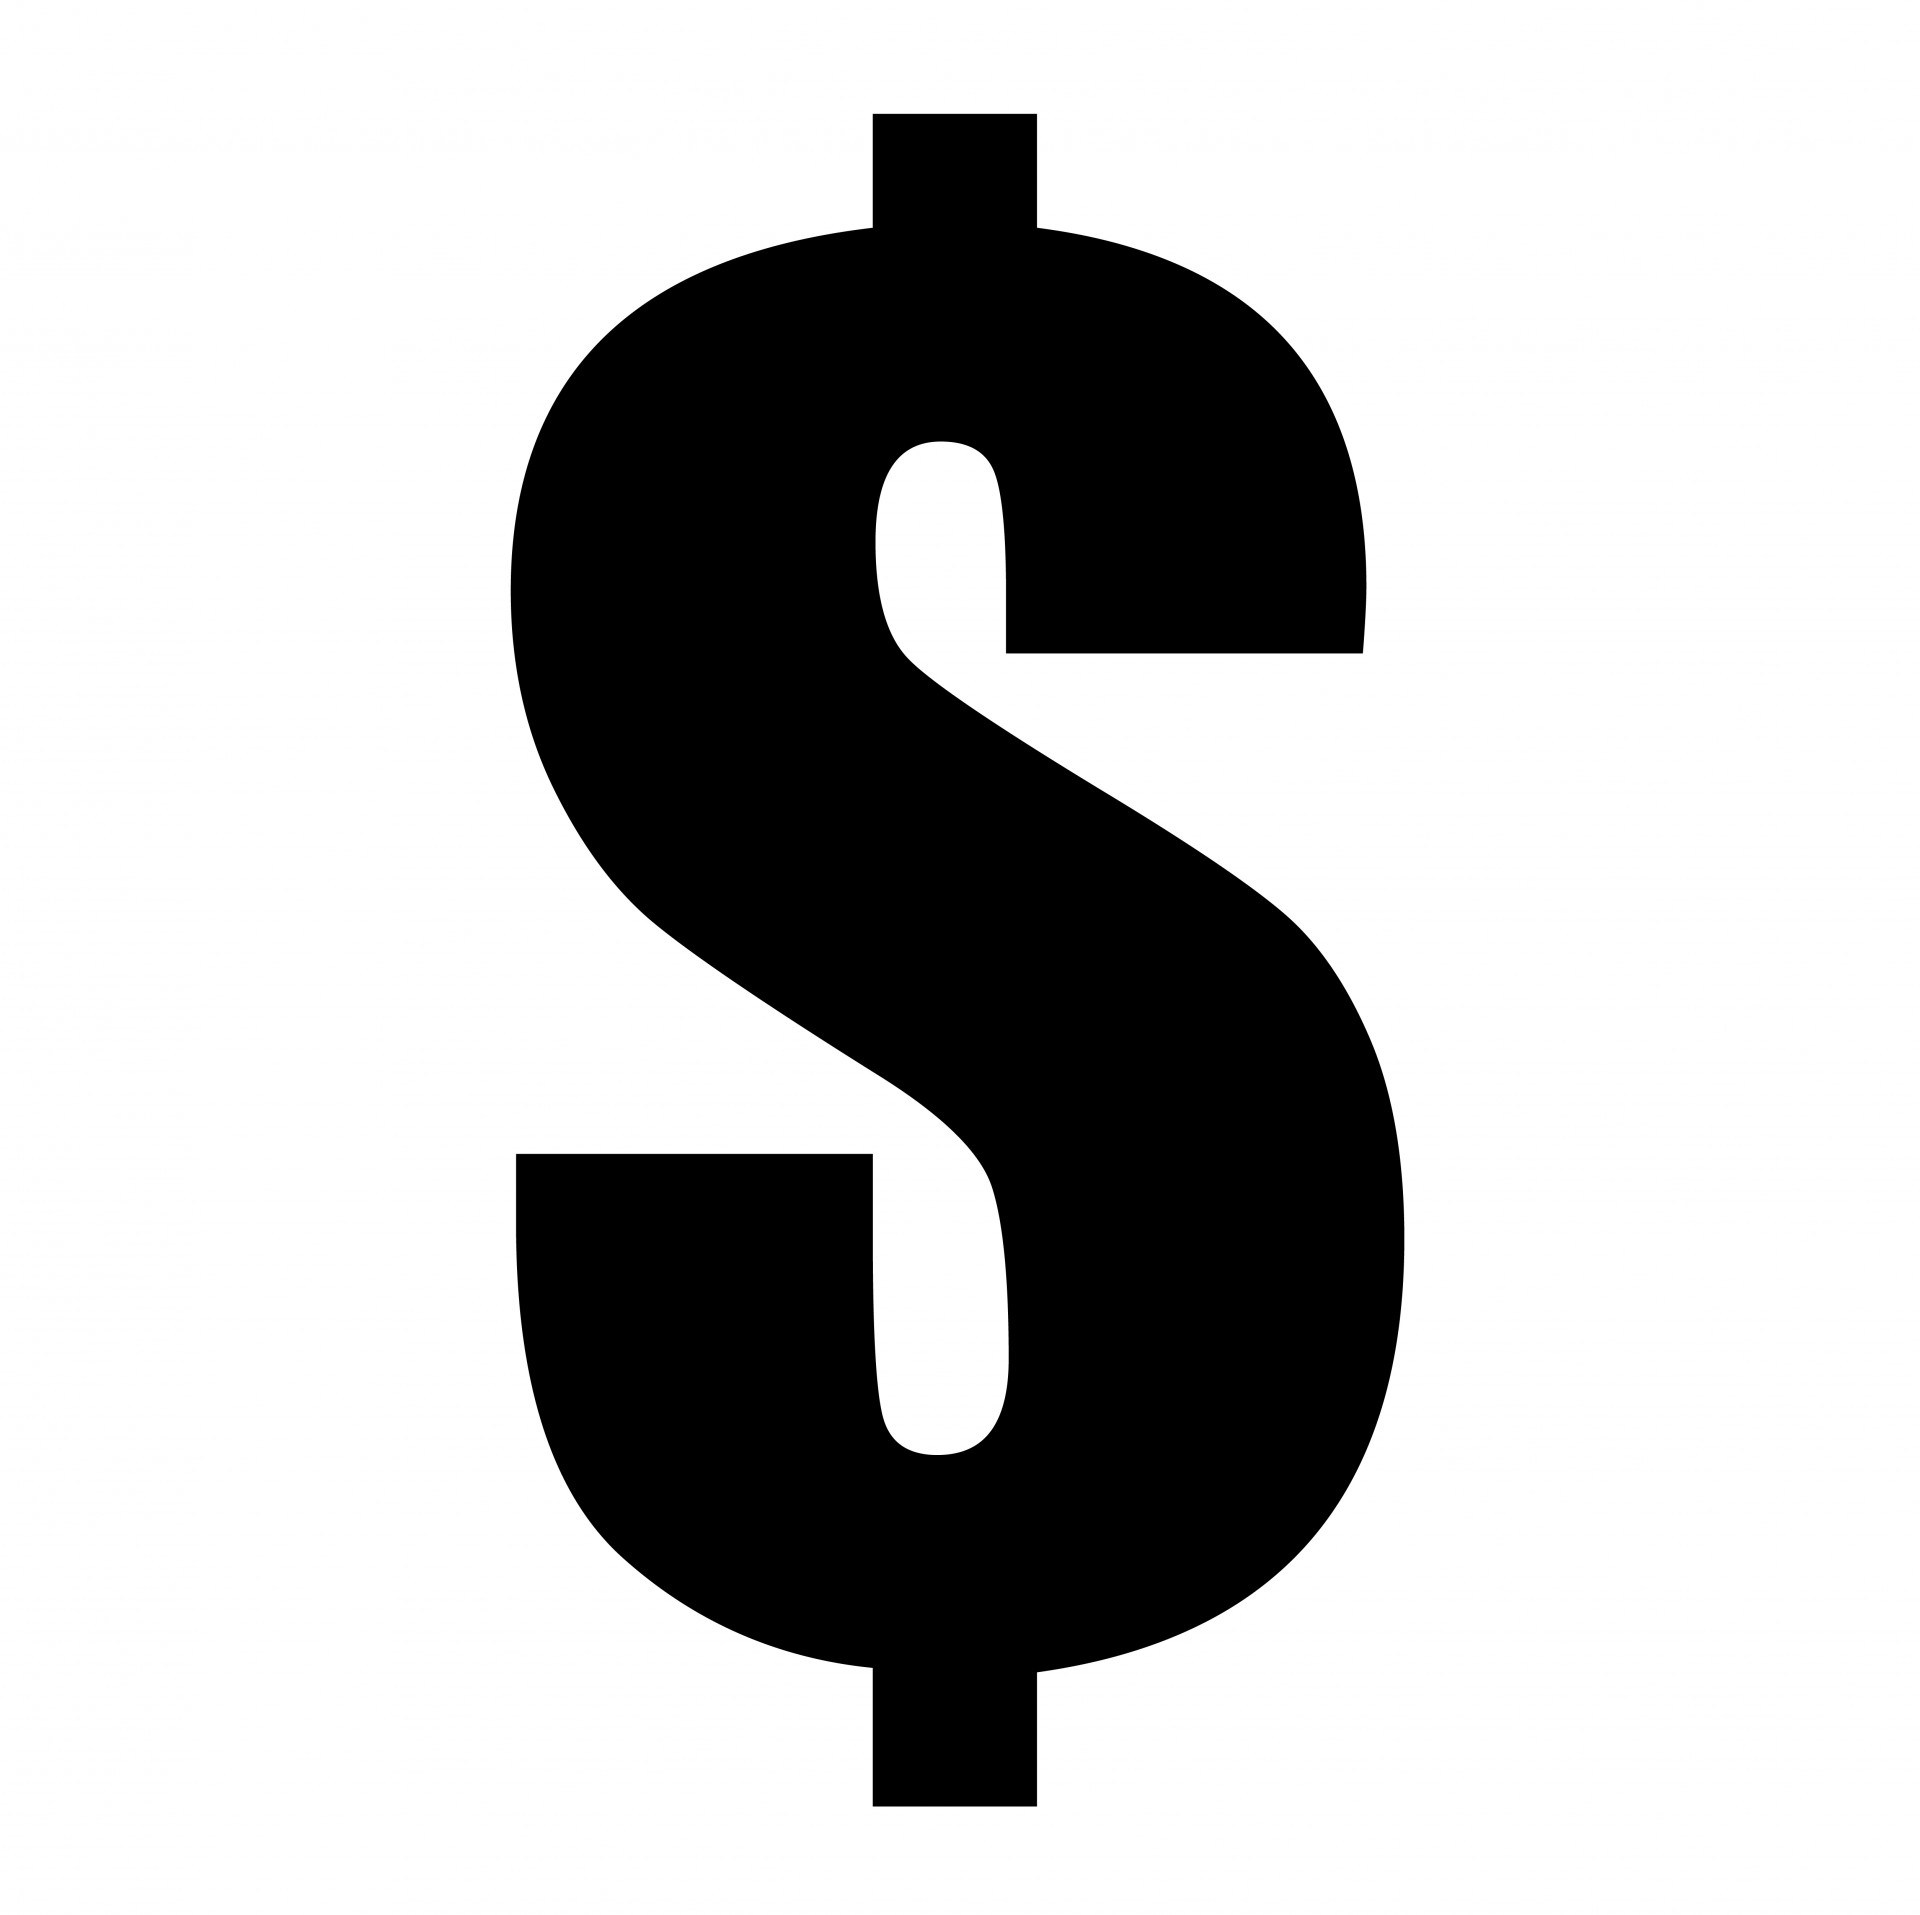 Dollar sign clipart black and white 2 » Clipart Portal.